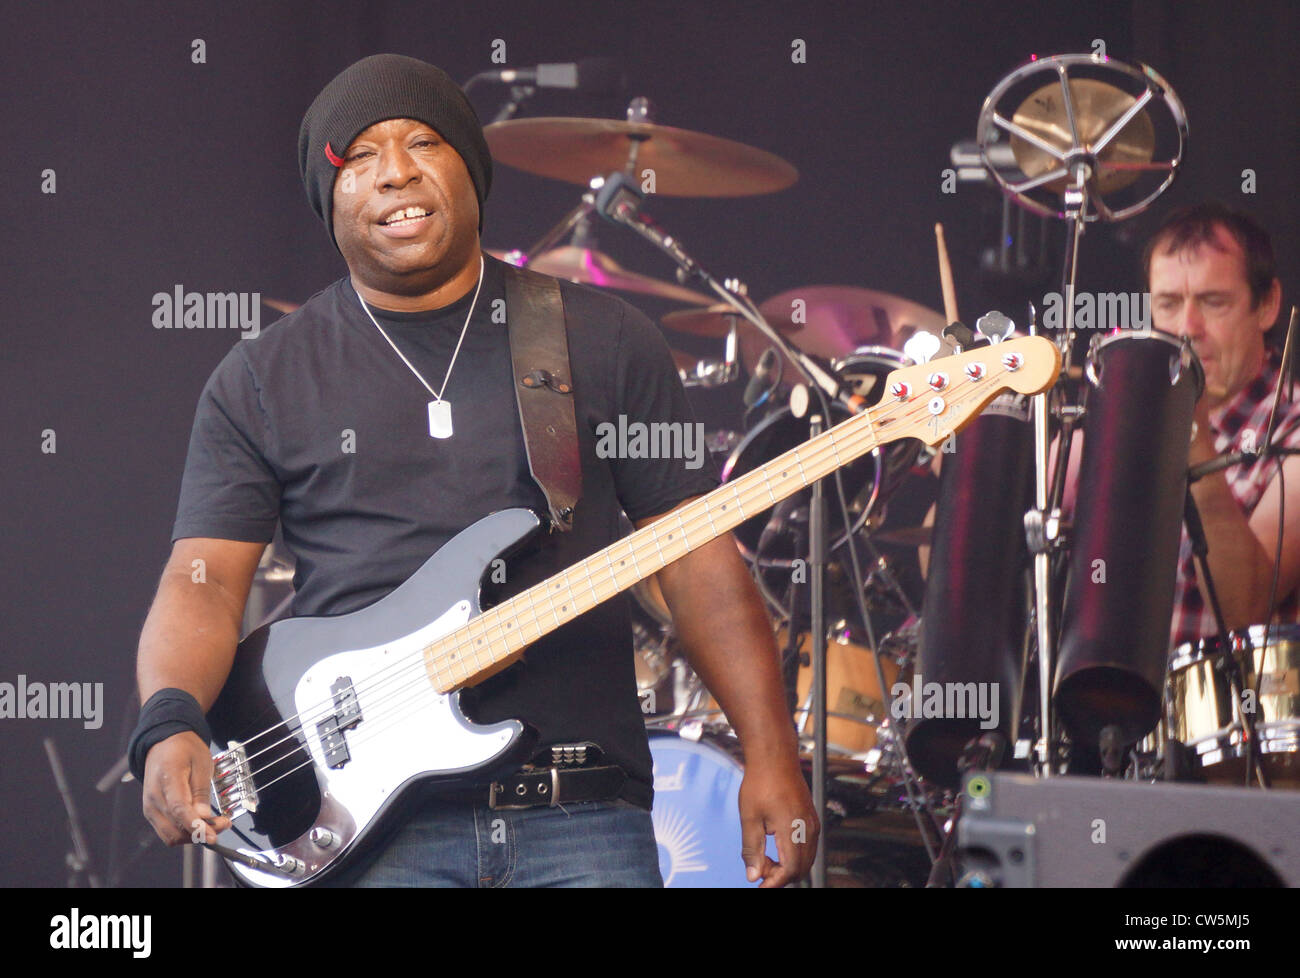 Big Country at Cropredy Festival August 2012 - Stock Image